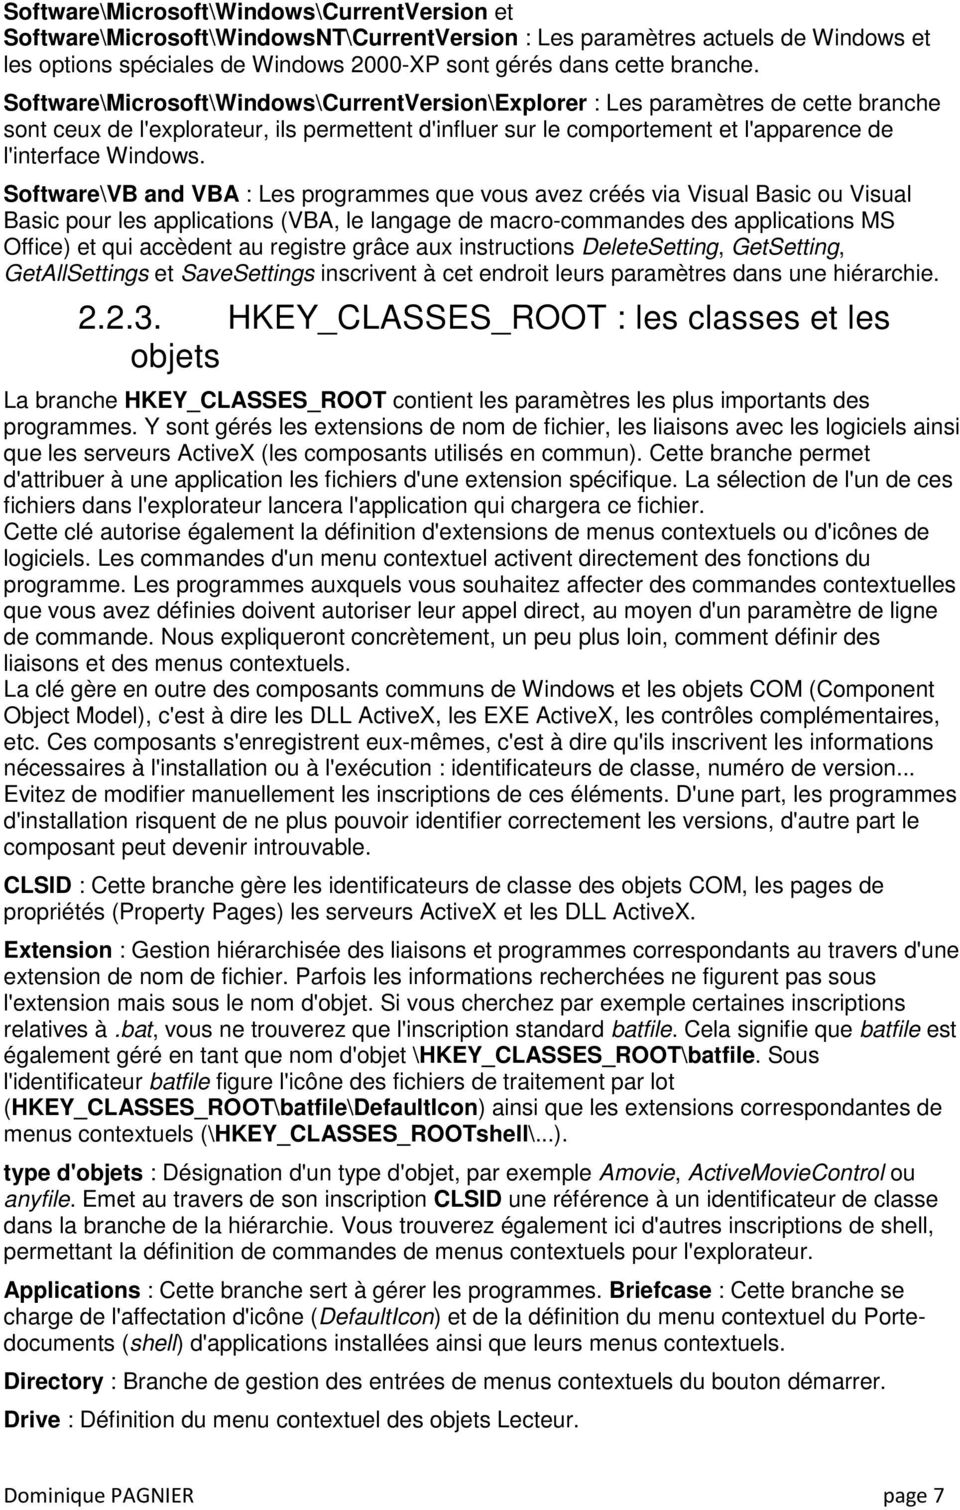 Sftware\VB and VBA : Les prgrammes que vus avez créés via Visual Basic u Visual Basic pur les applicatins (VBA, le langage de macr-cmmandes des applicatins MS Office) et qui accèdent au registre